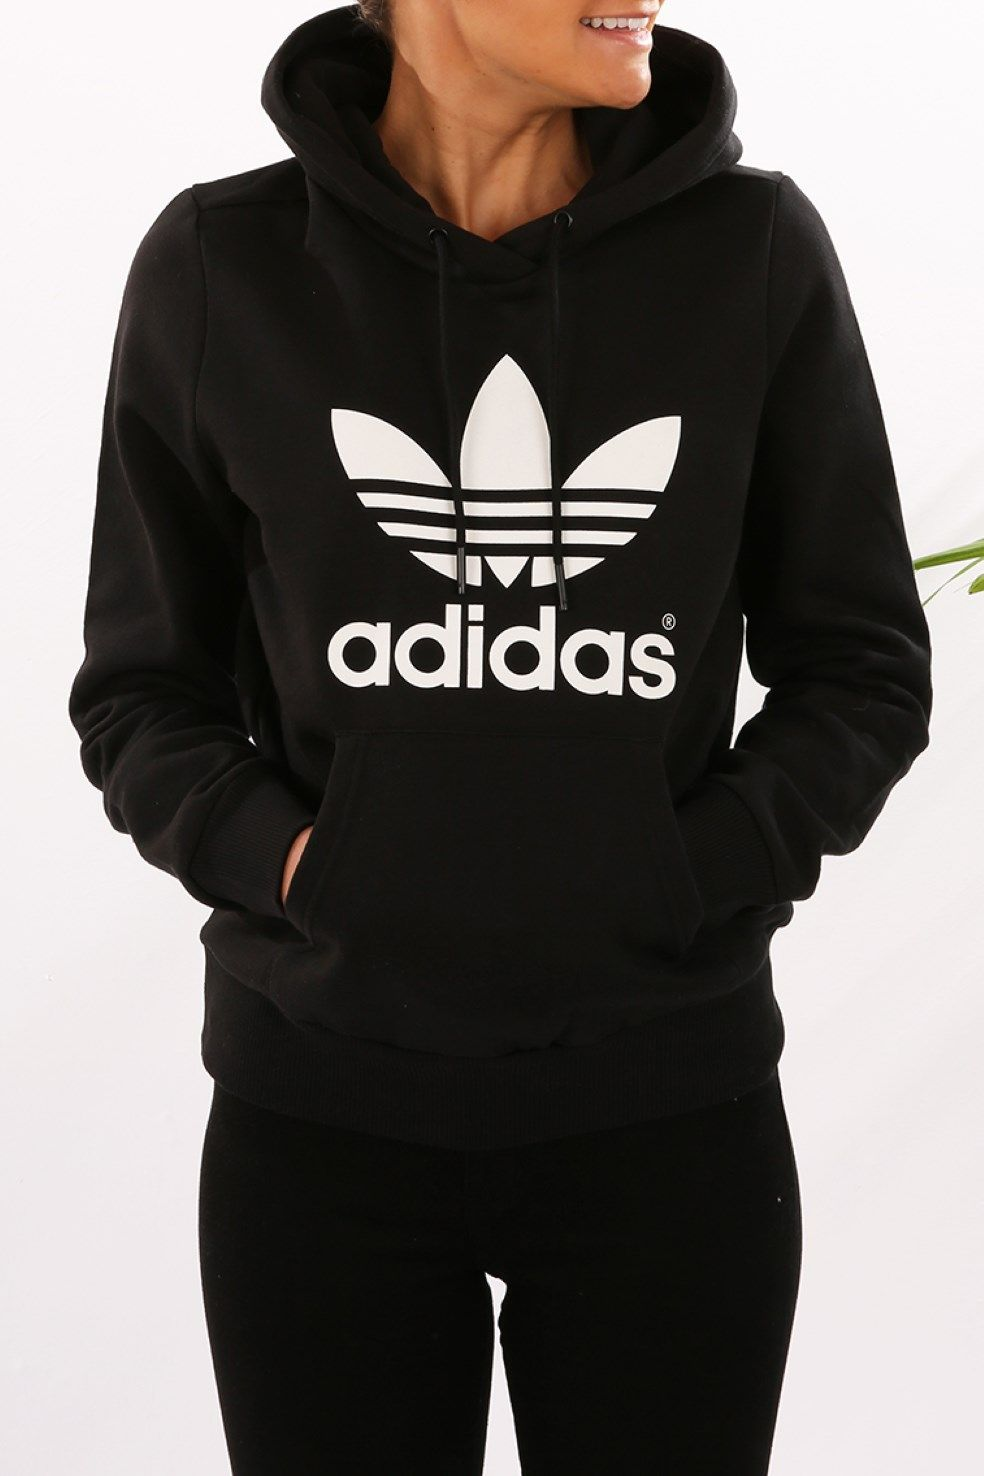 adidas Originals Art Crew Sweatshirt - Women's - Medium Grey ...